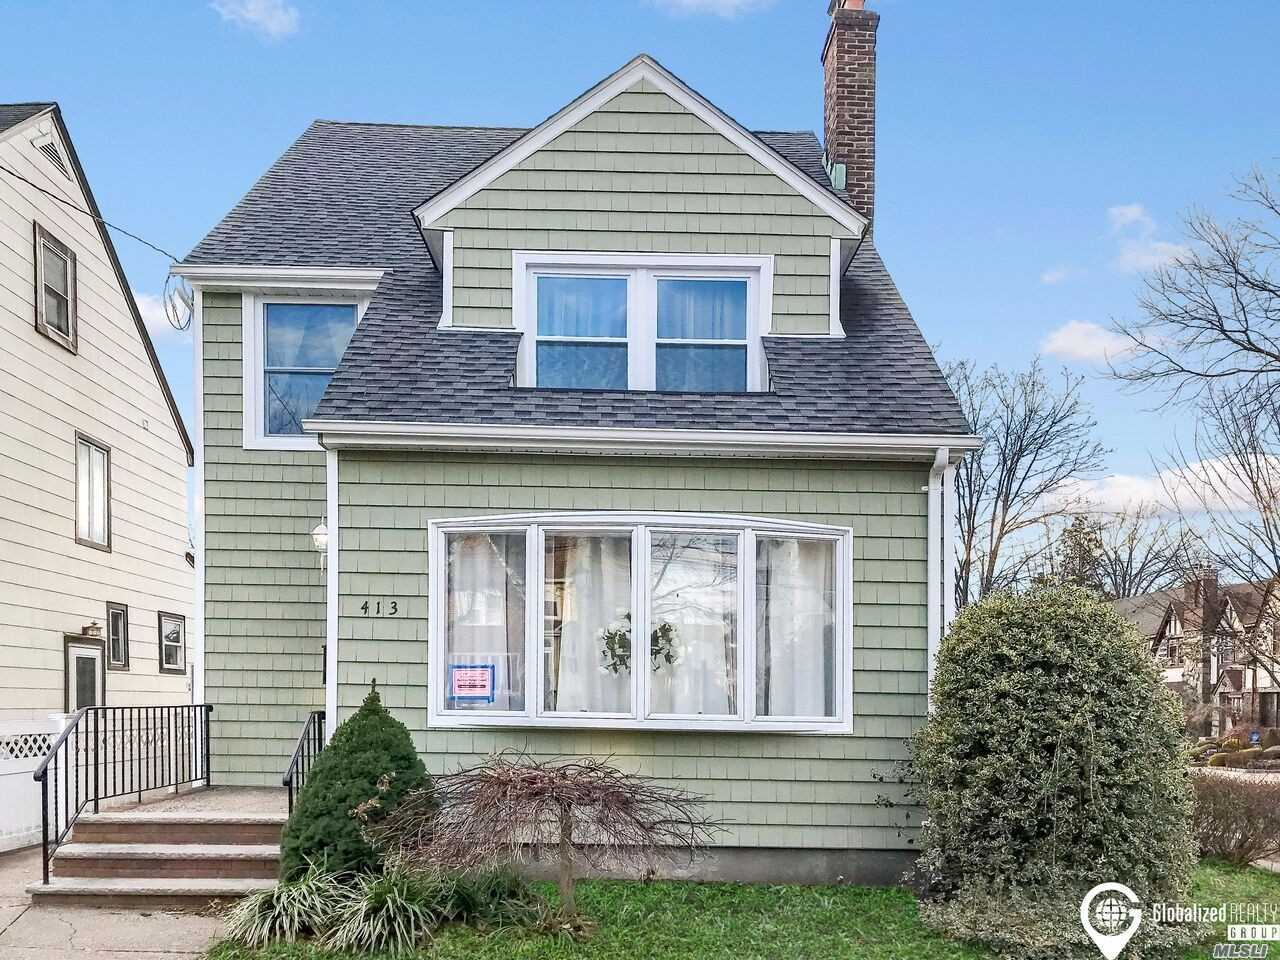 Newly Renovated Colonial!! This Home Has A New Roof! New Windows! New Siding! New Plumbing! New Electric! Hardwood Floors! Led Lighting! New Bathrooms! New Kitchen W/ Granite Counters & Stainless Steel Appliances & Much Much More!!!